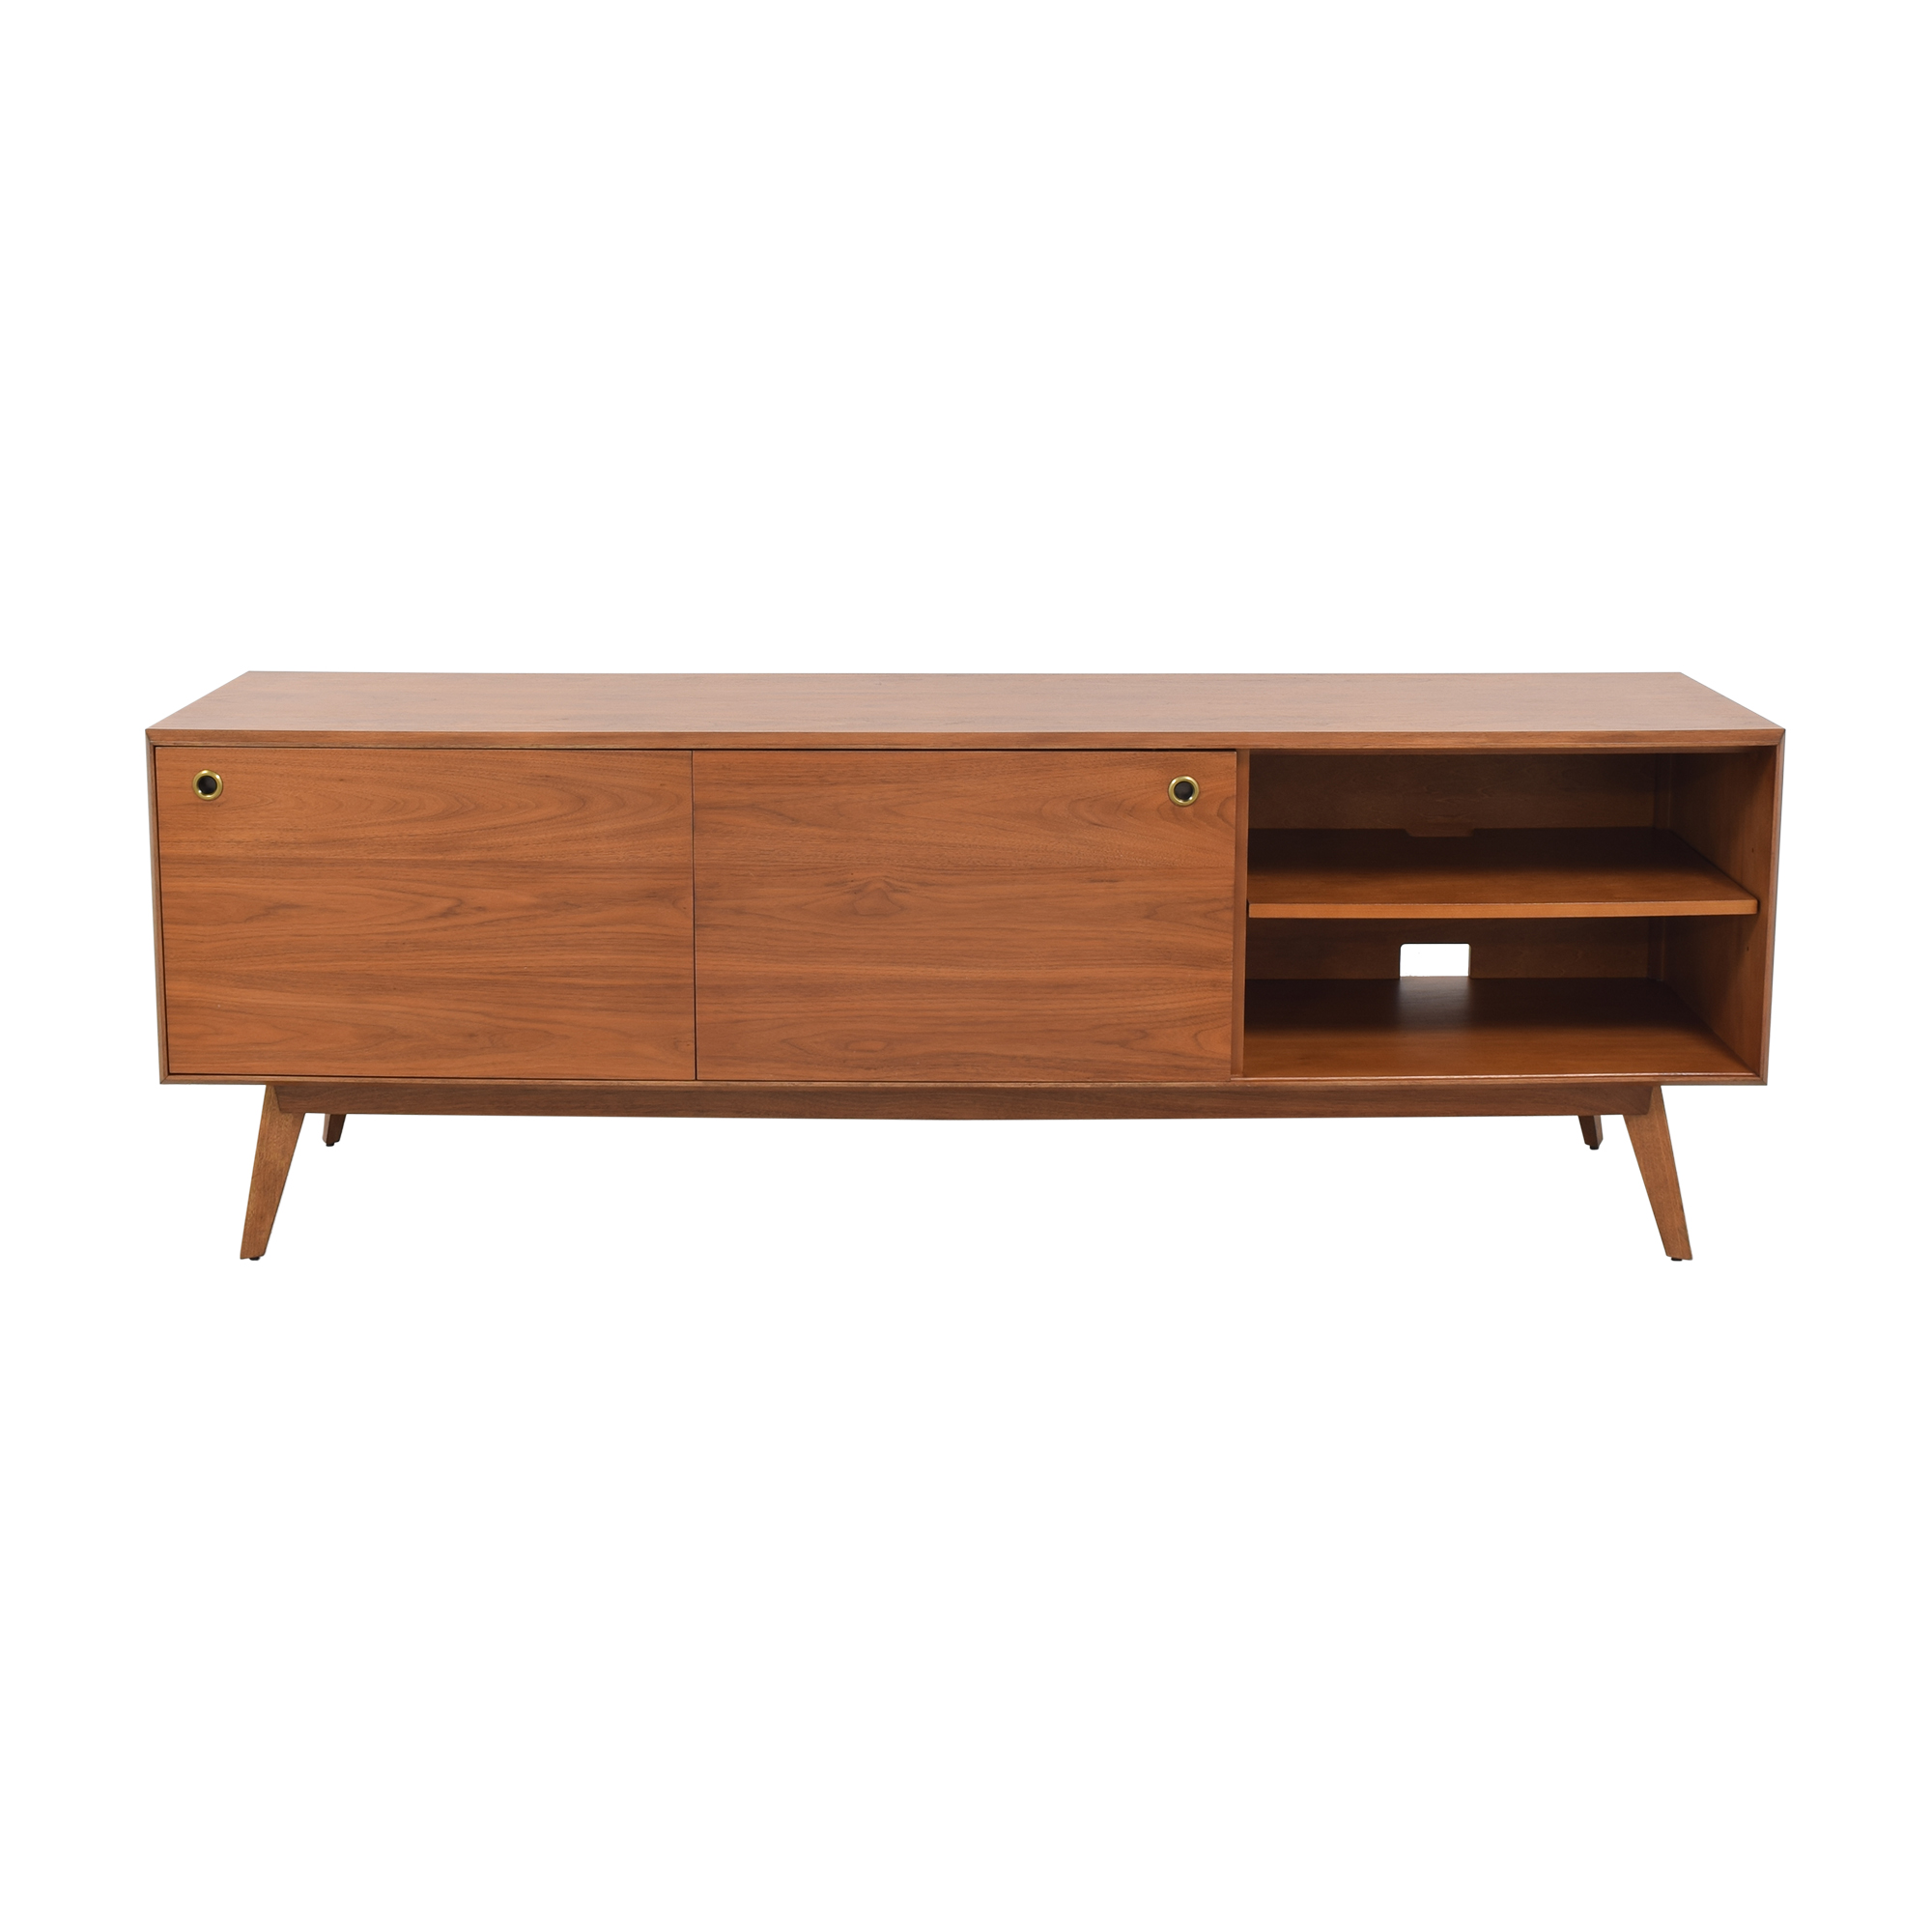 West Elm West Elm Arlo Mid Century Media Console second hand